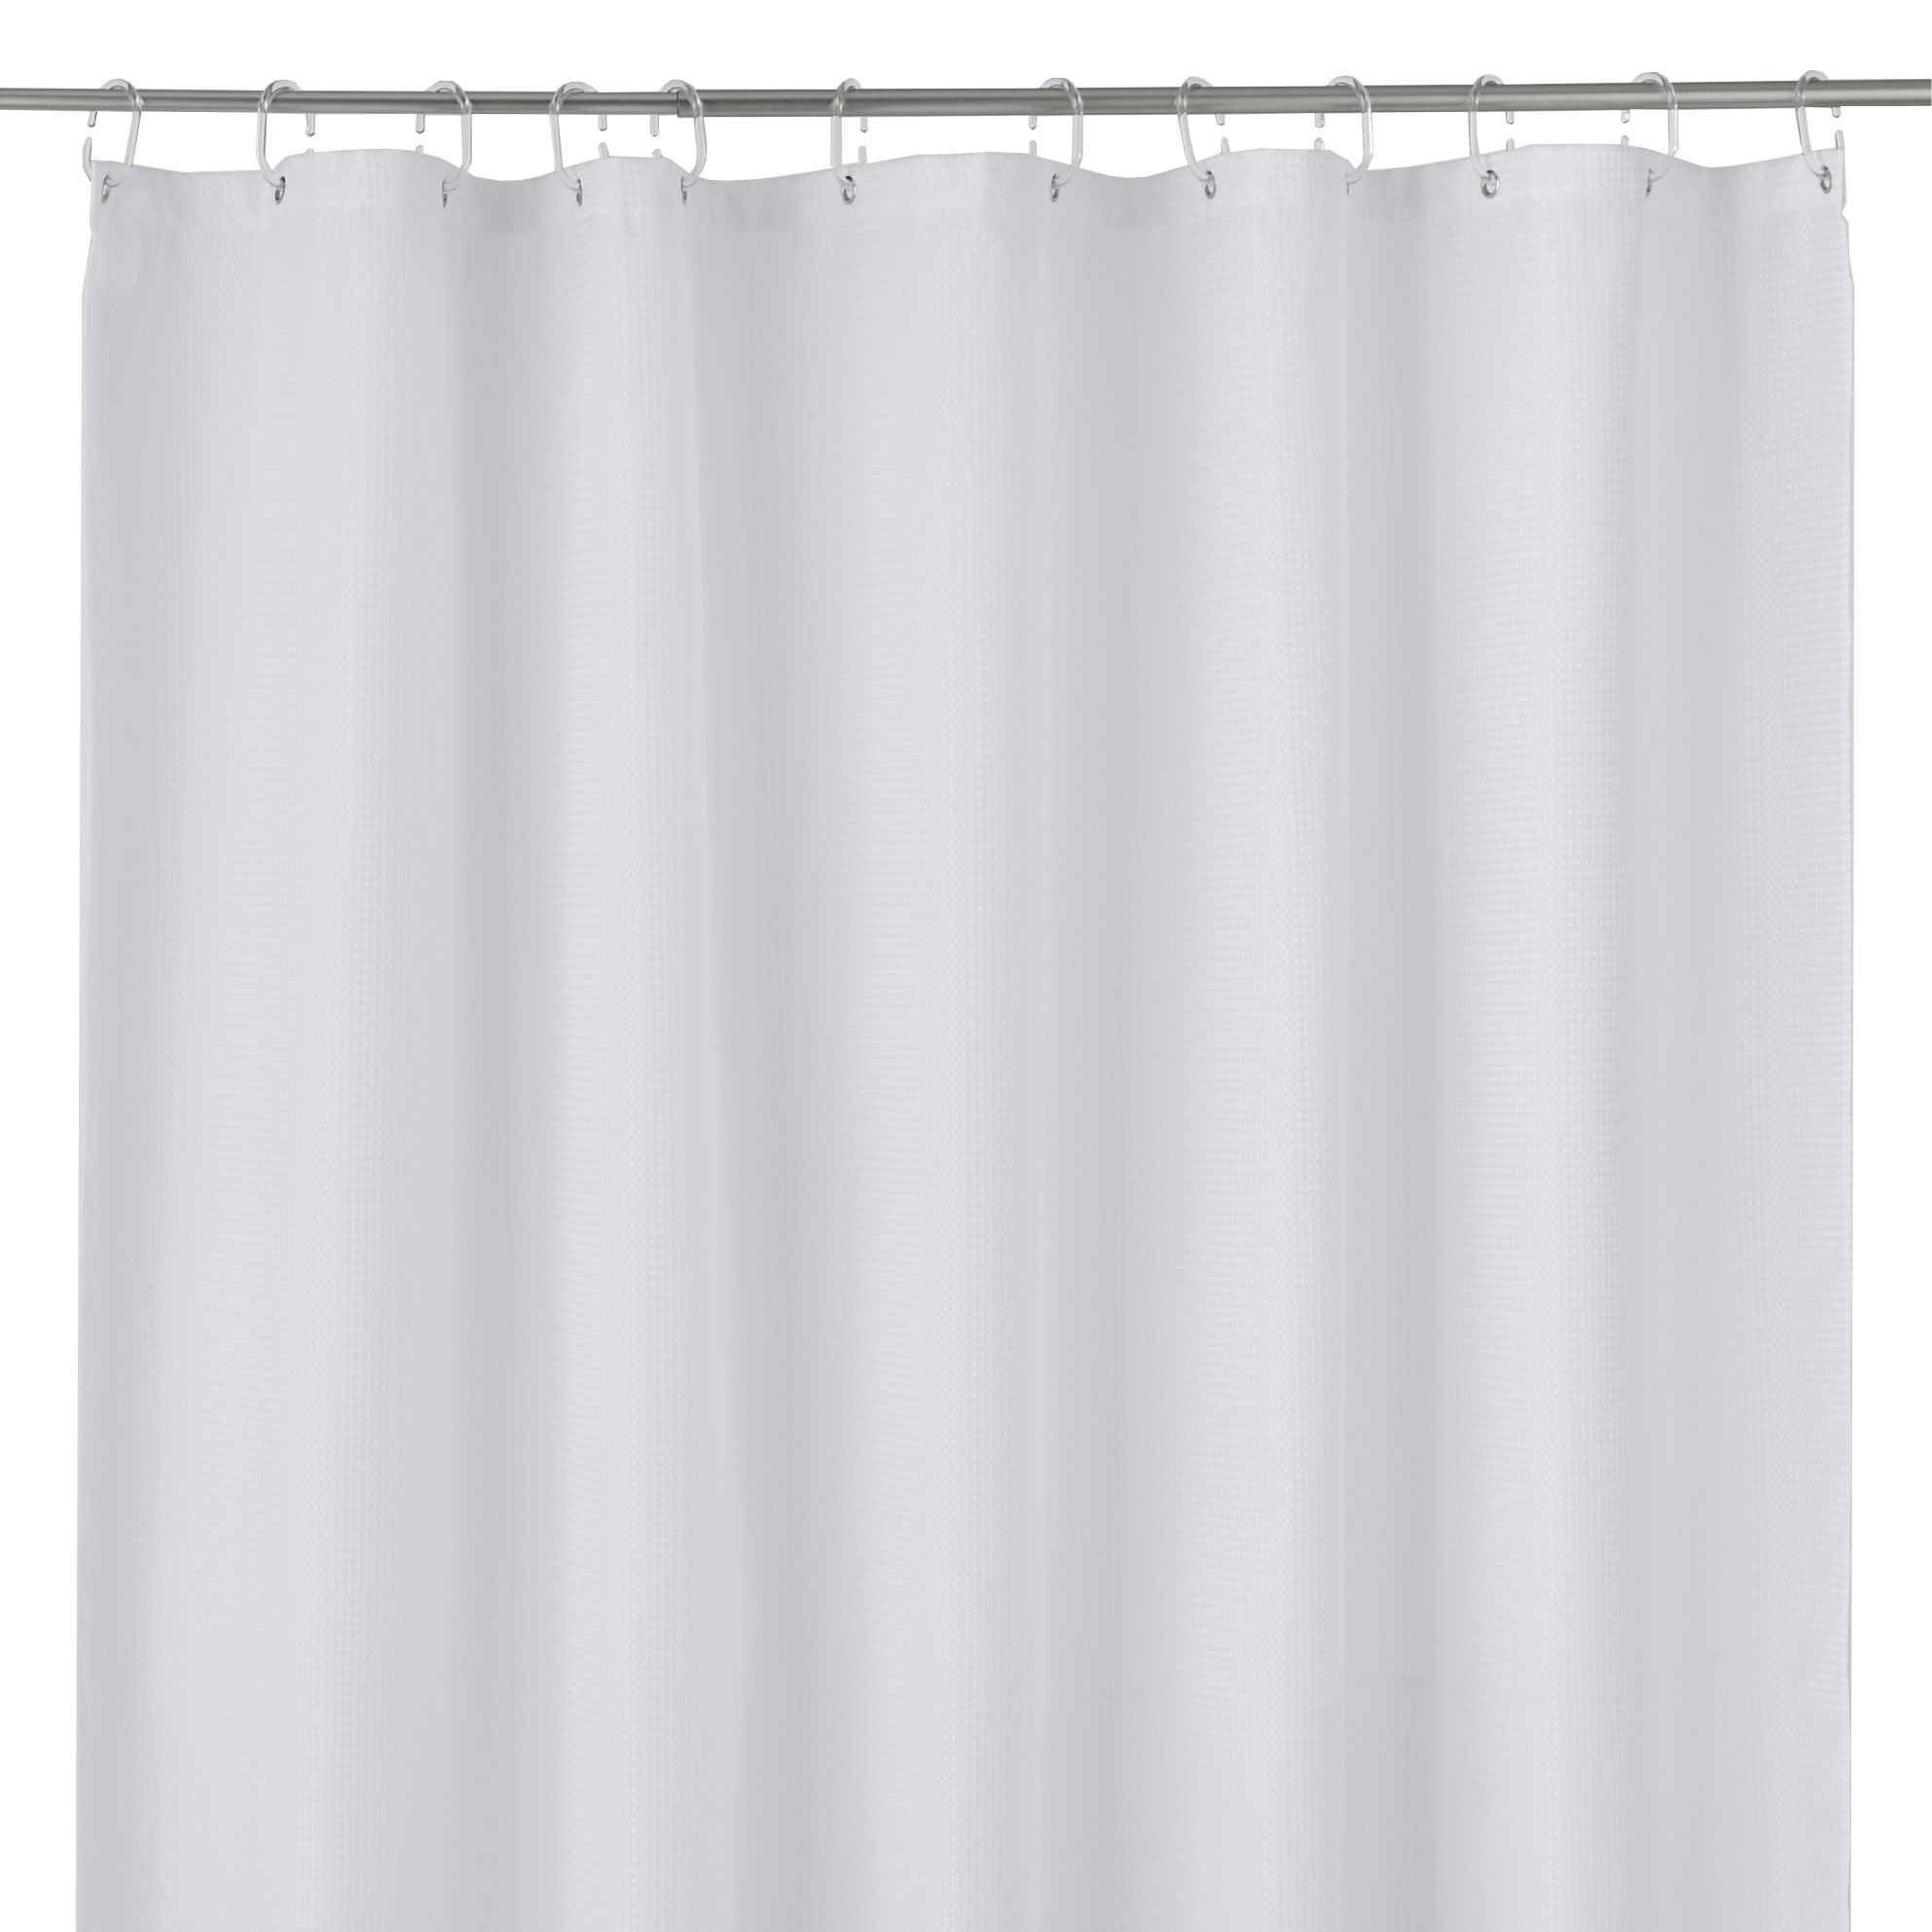 p glacier fabric bay dobby shower wht white curtains curtain in taupe